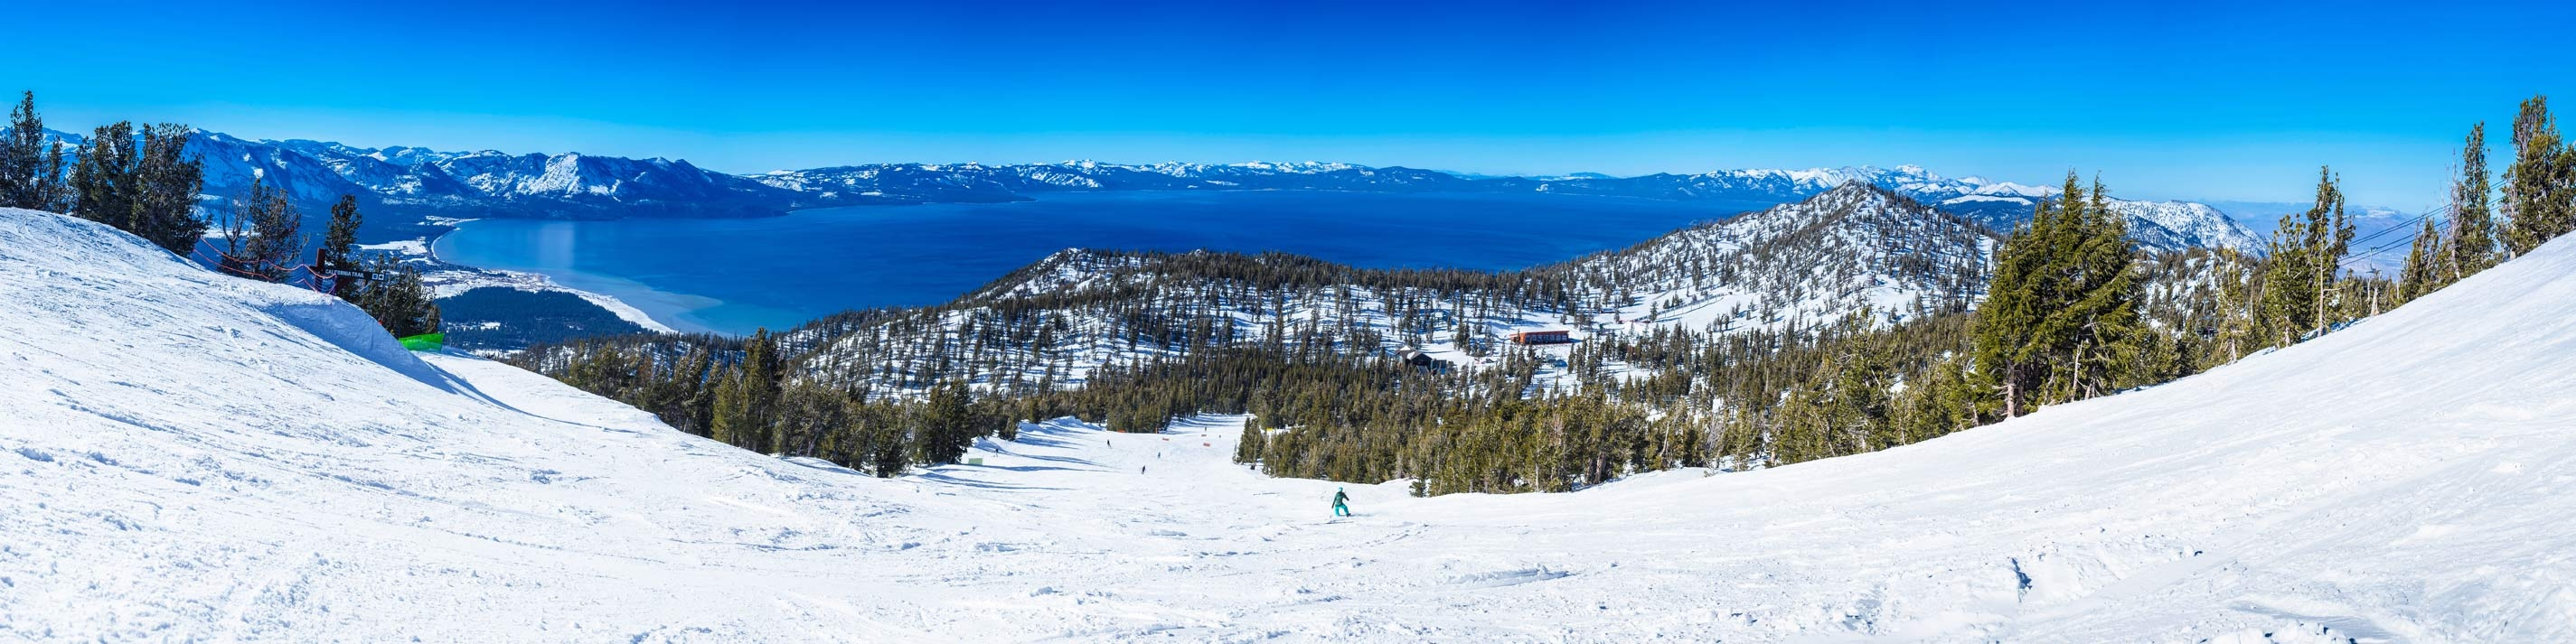 California Trail ski run at Heavenly Mountain Resort